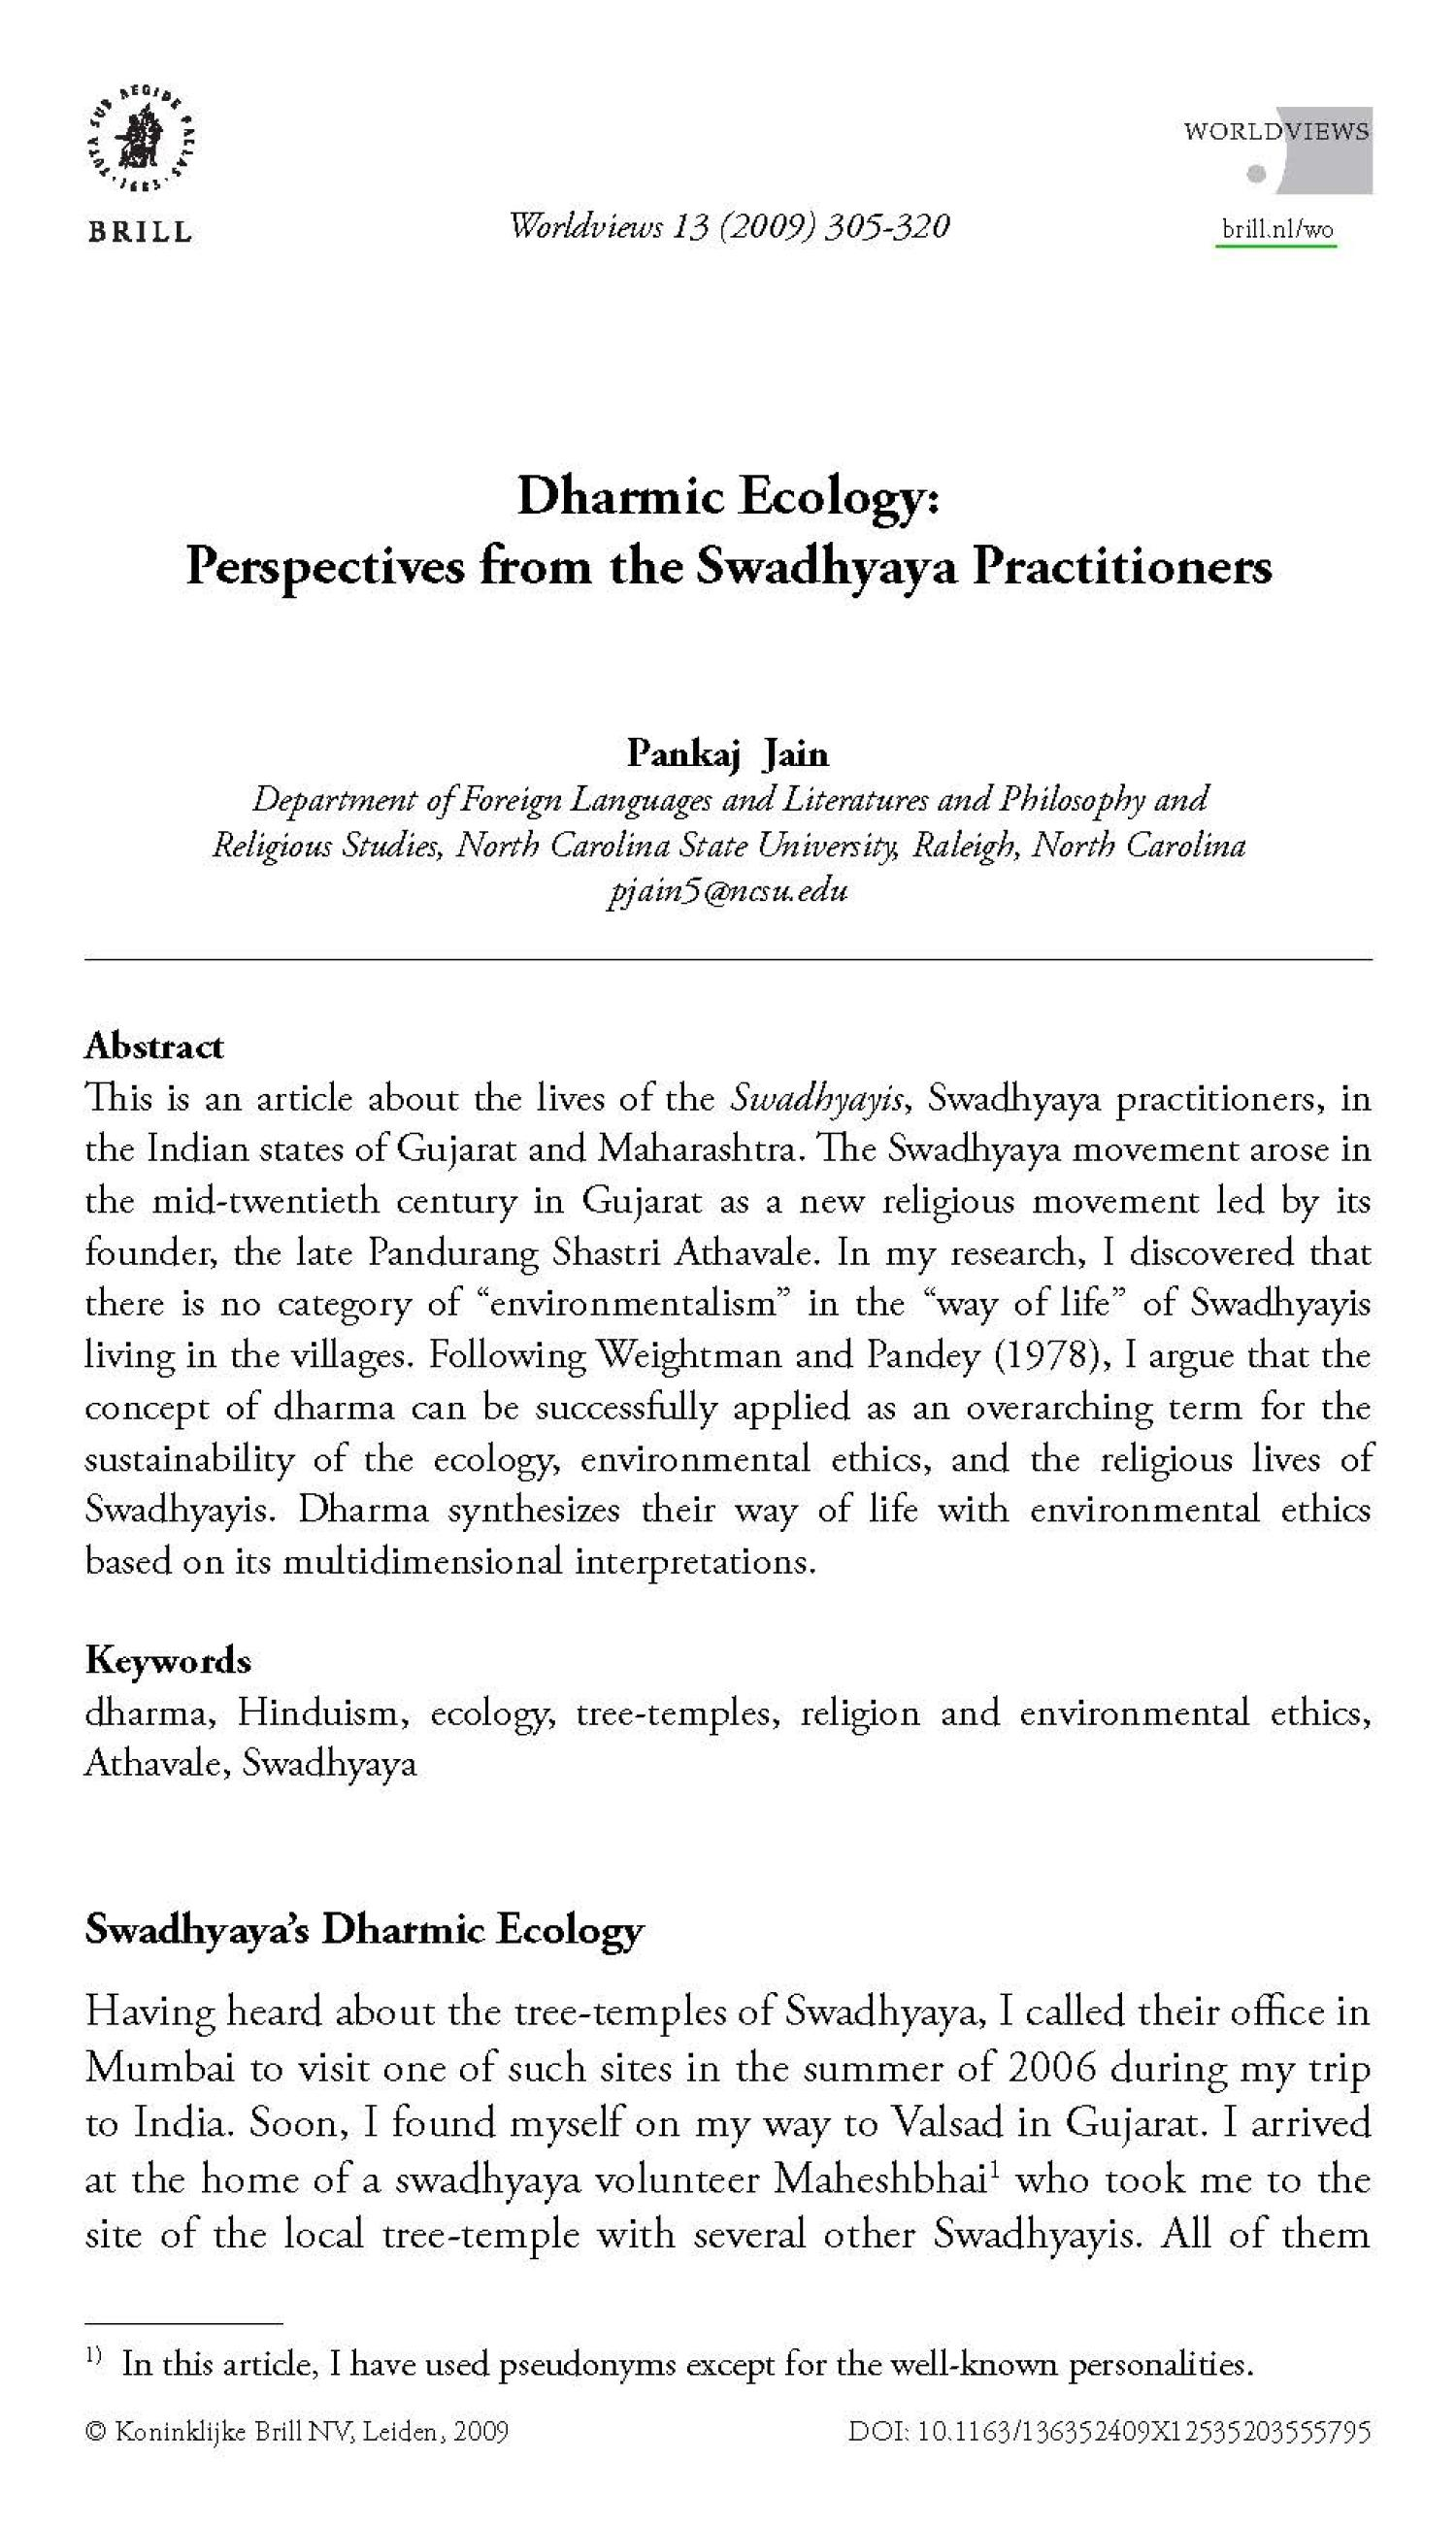 Dharmic Ecology: Perspectives from the Swadhyaya Practitioners                                                                                                      305